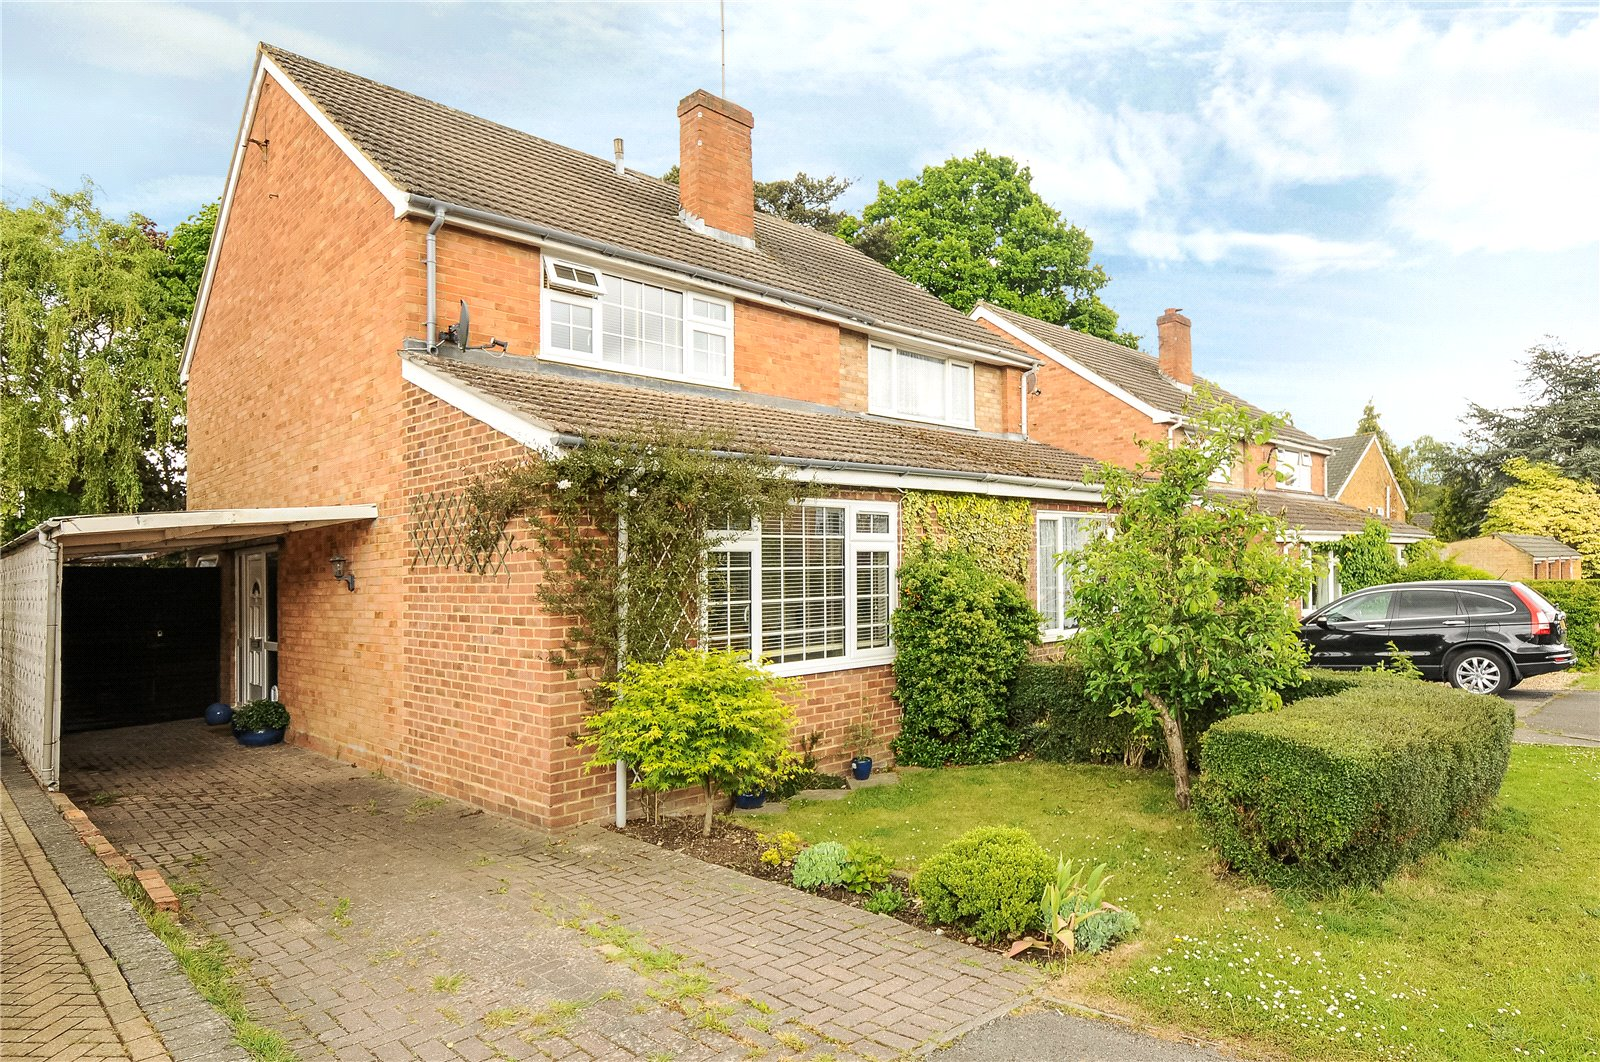 3 Bedrooms Semi Detached House for sale in New Meadow, Ascot, Berkshire, Berkshire, SL5